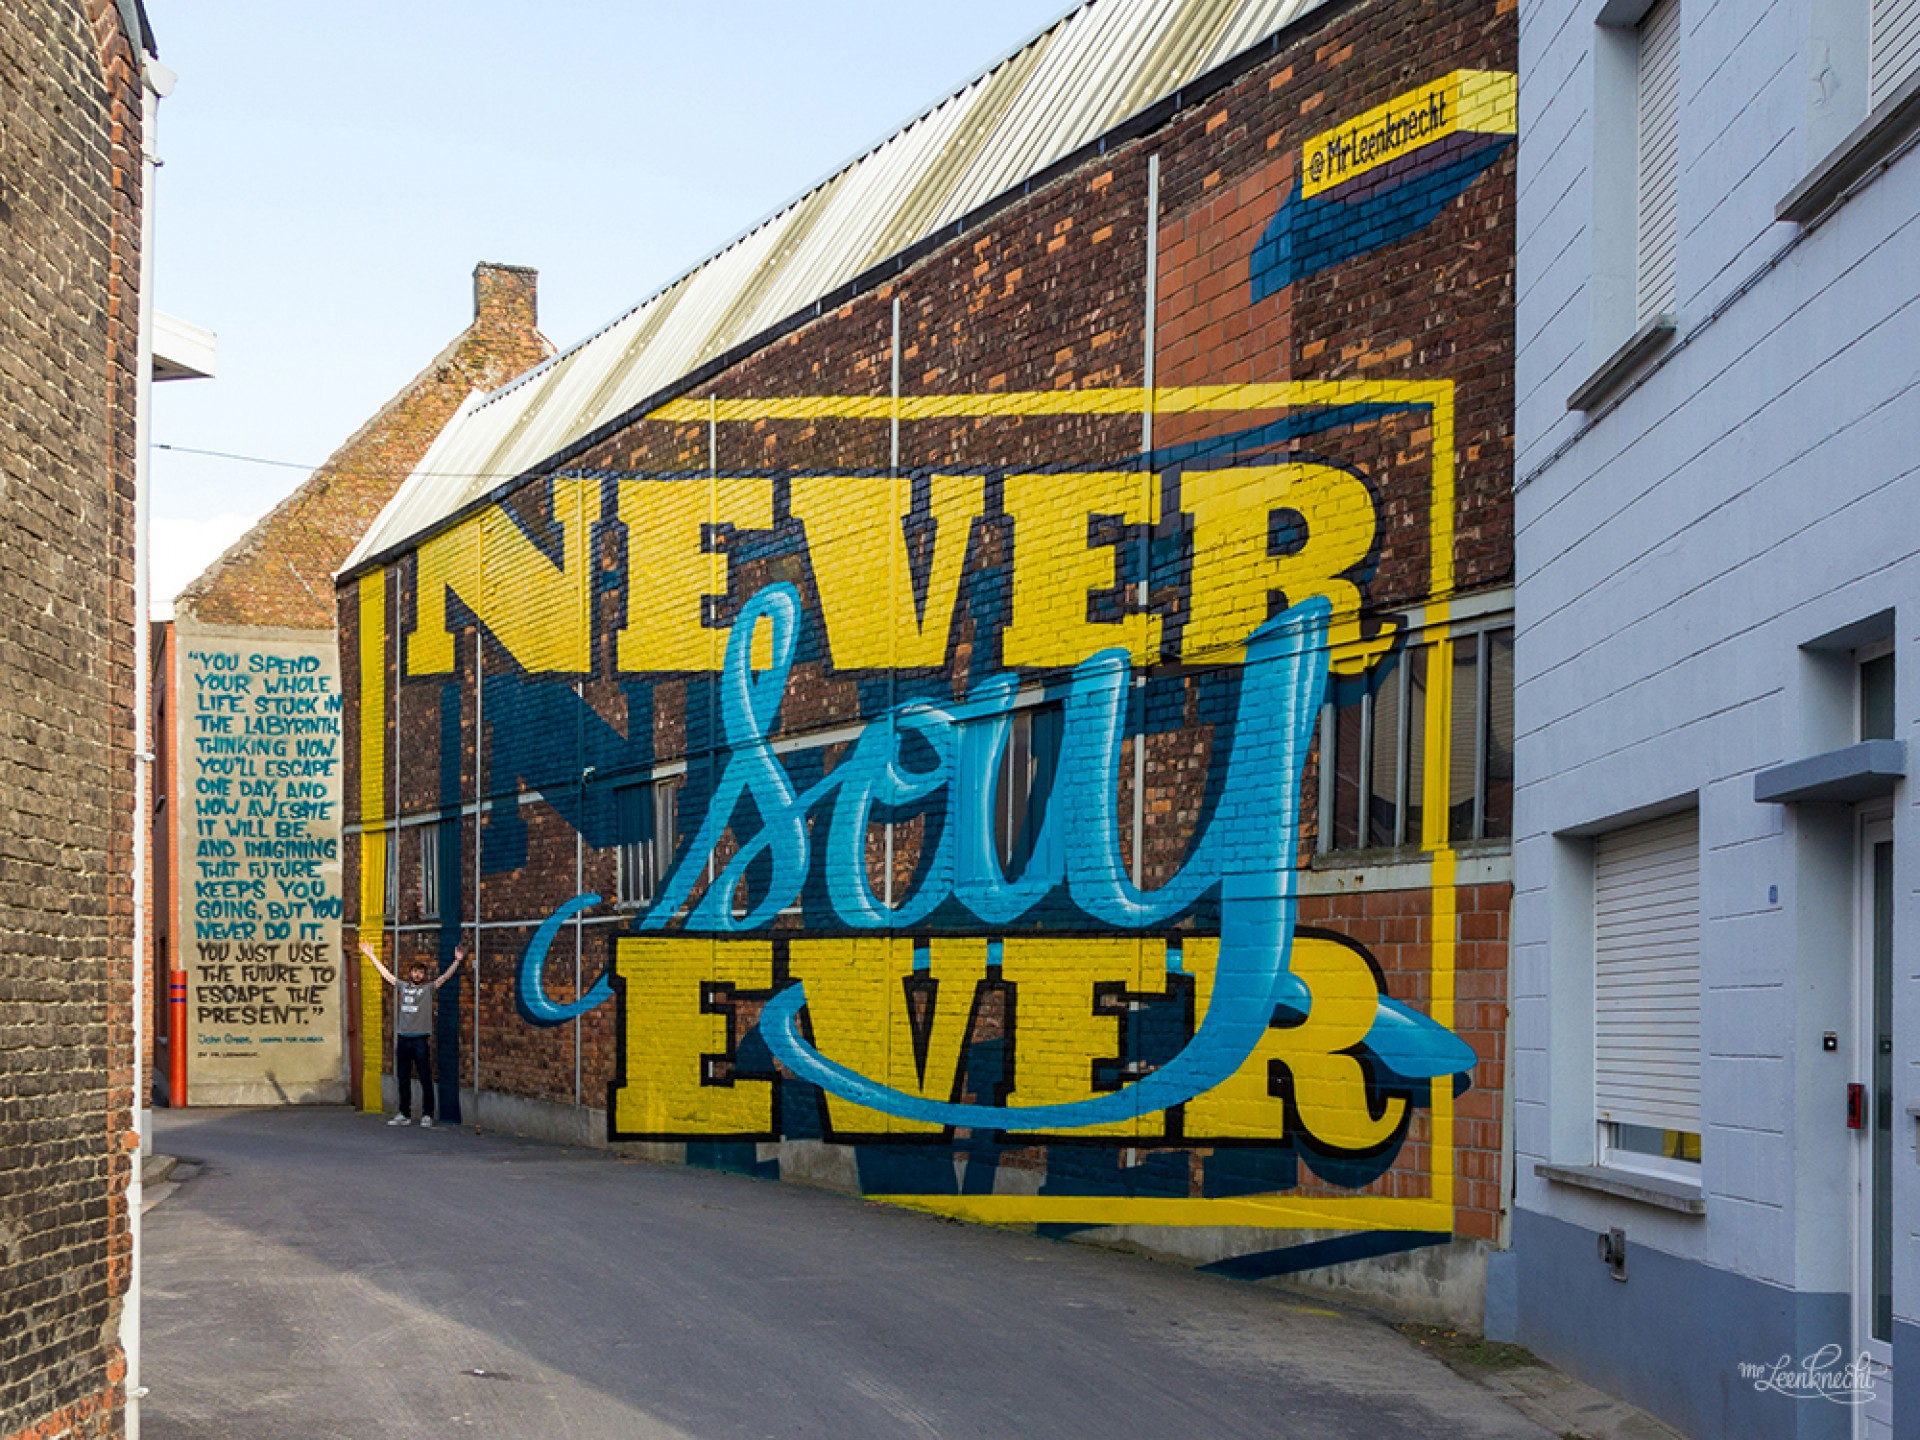 Never say ever, a mural by Mr. Leenknecht